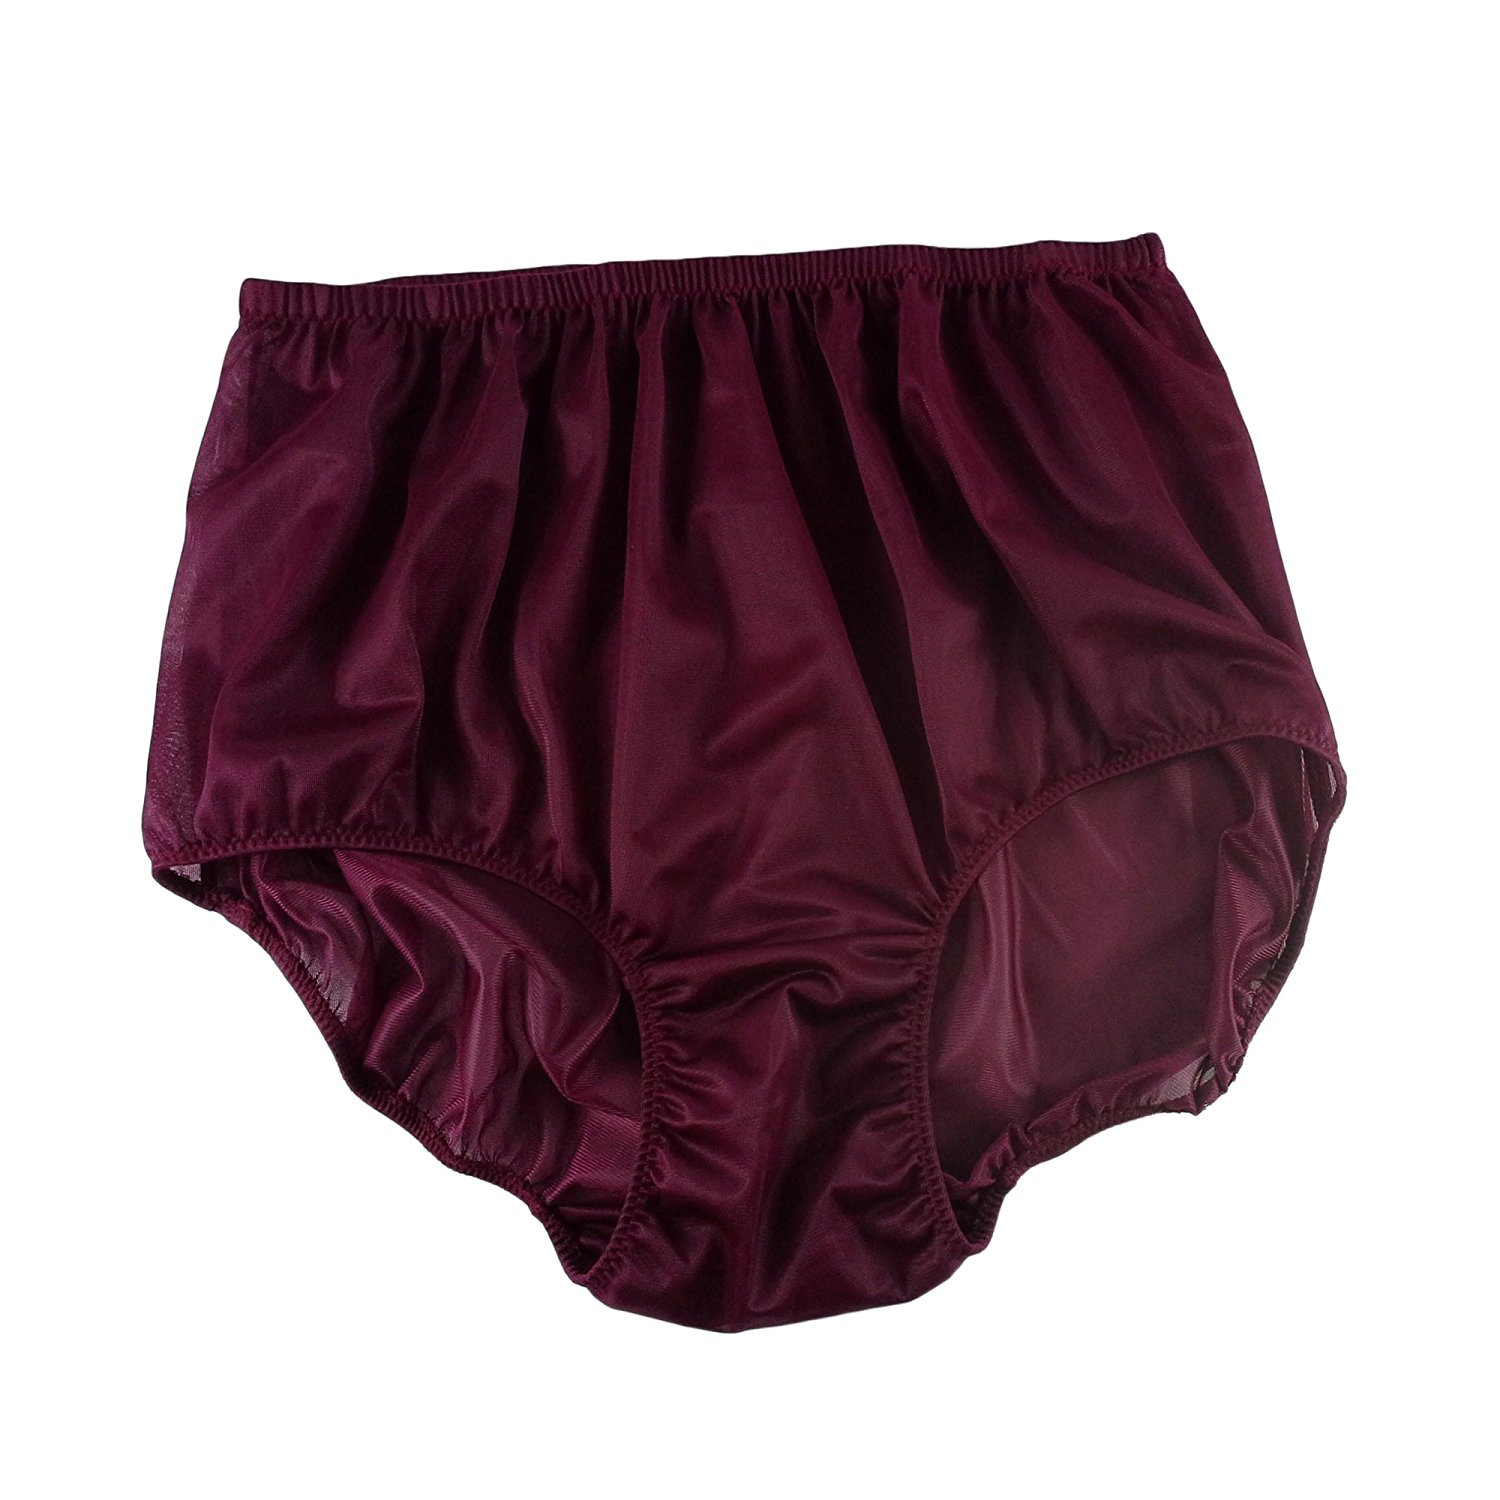 dcade346eb Get Quotations · Deep Red Granny Panties Briefs Sheer Nylon Underwear For  Women & Men Plus Size